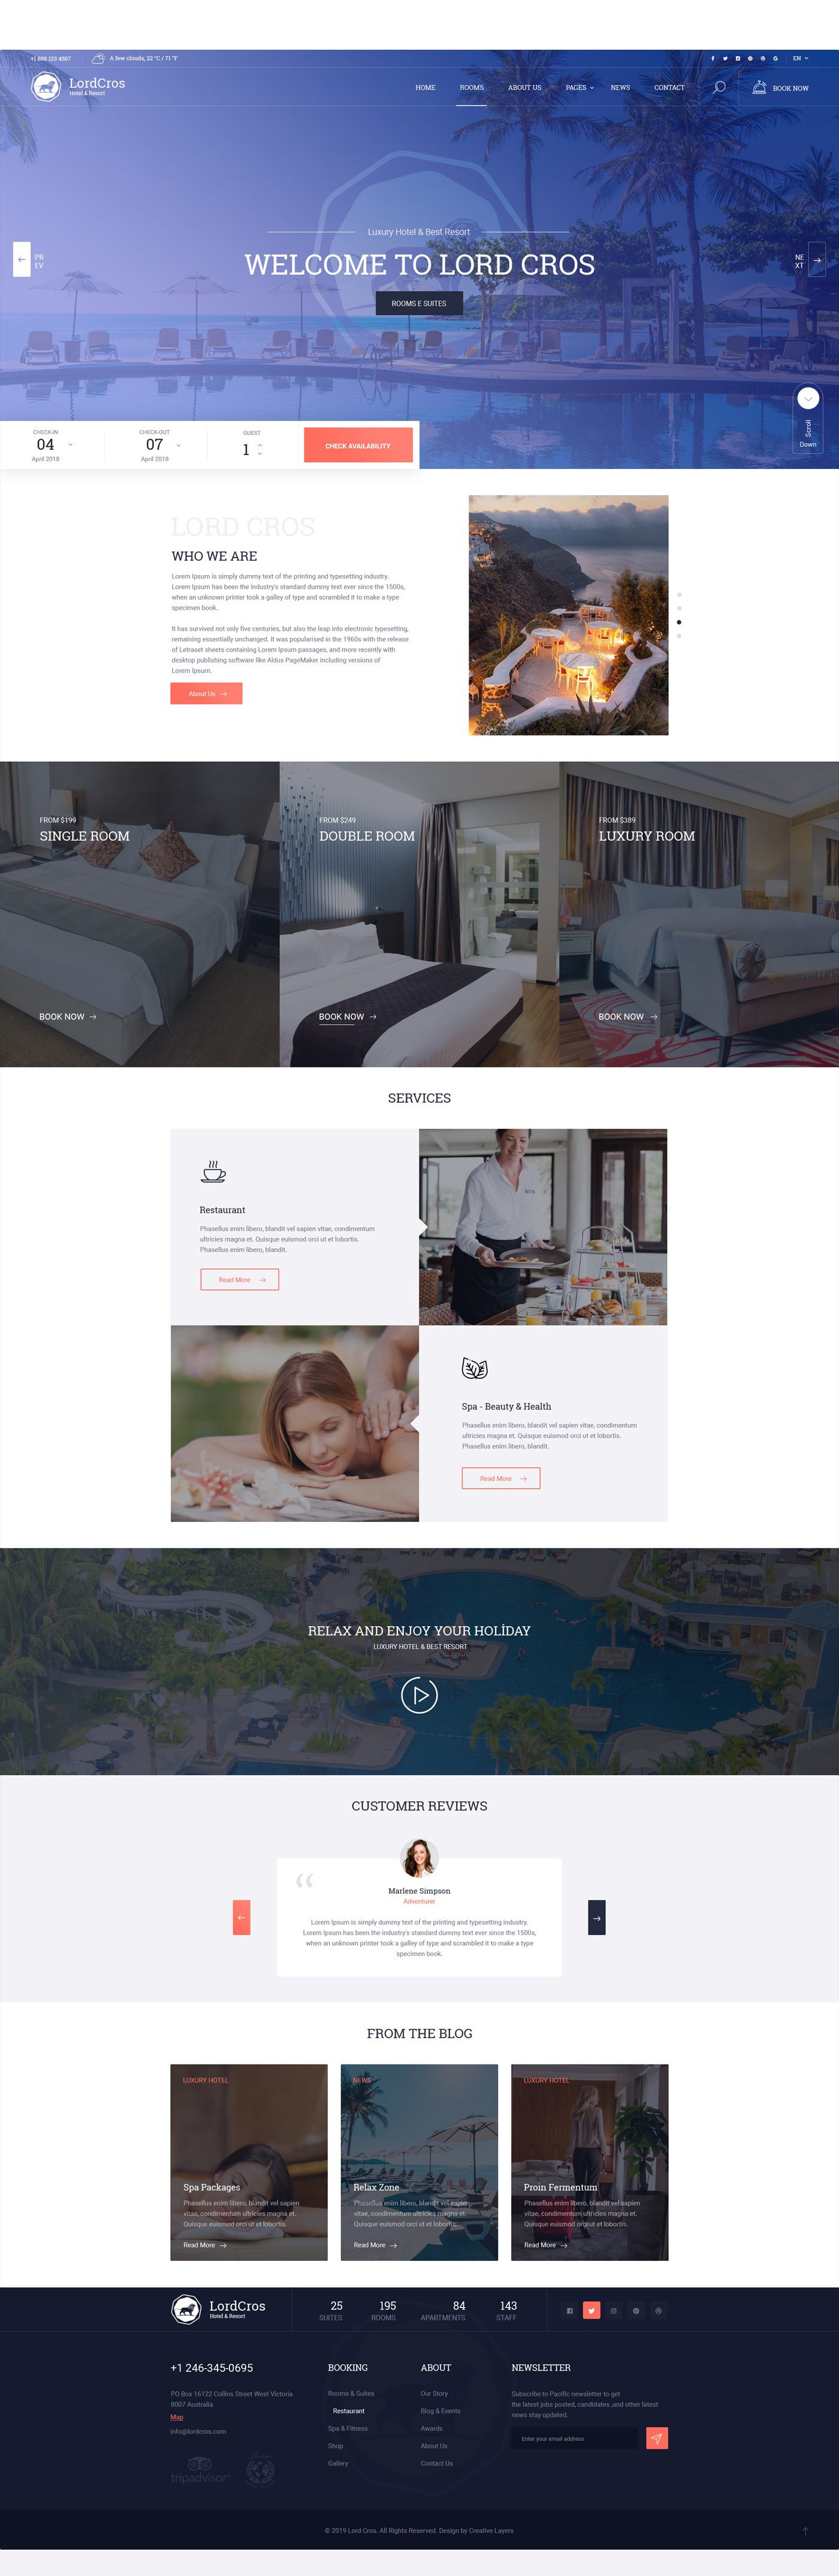 LordCros - Hotel, Resort & Spa PSD Template - 2